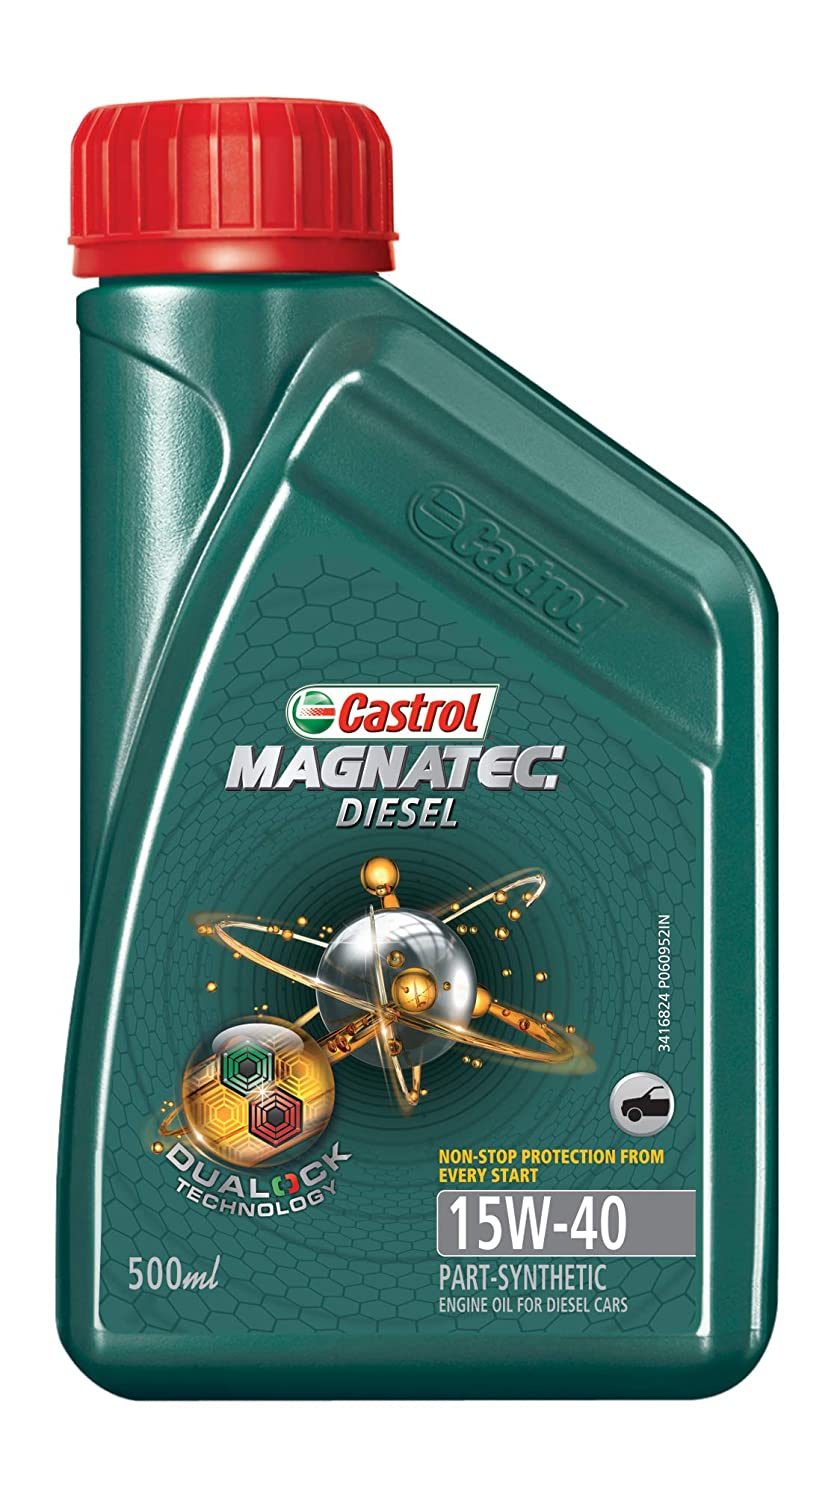 Castrol MAGNATEC Diesel 15W-40 API SN Part-Synthetic Engine Oil for Diesel Cars (0.5 L) (2021/8K)